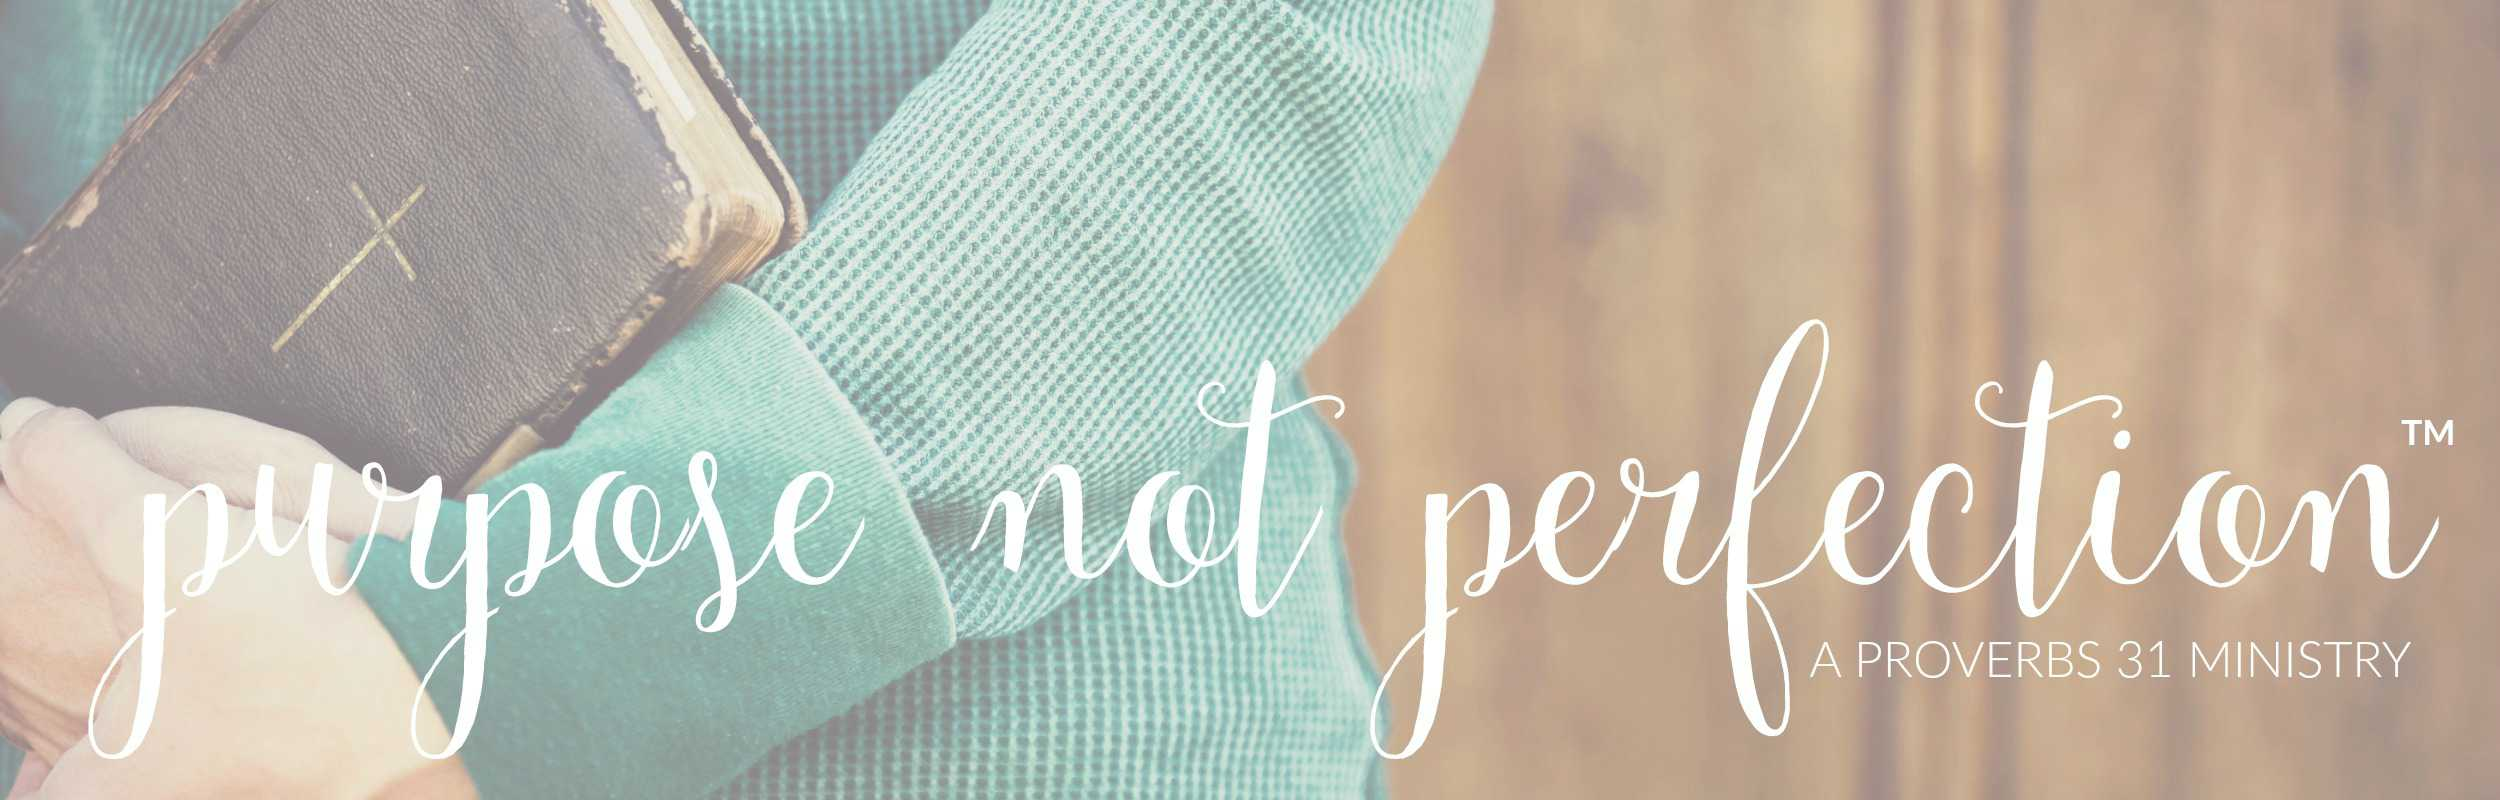 Being a Proverbs 31 Woman isn't about being perfect. It's about living life with purpose. @ AVirtuousWoman.org